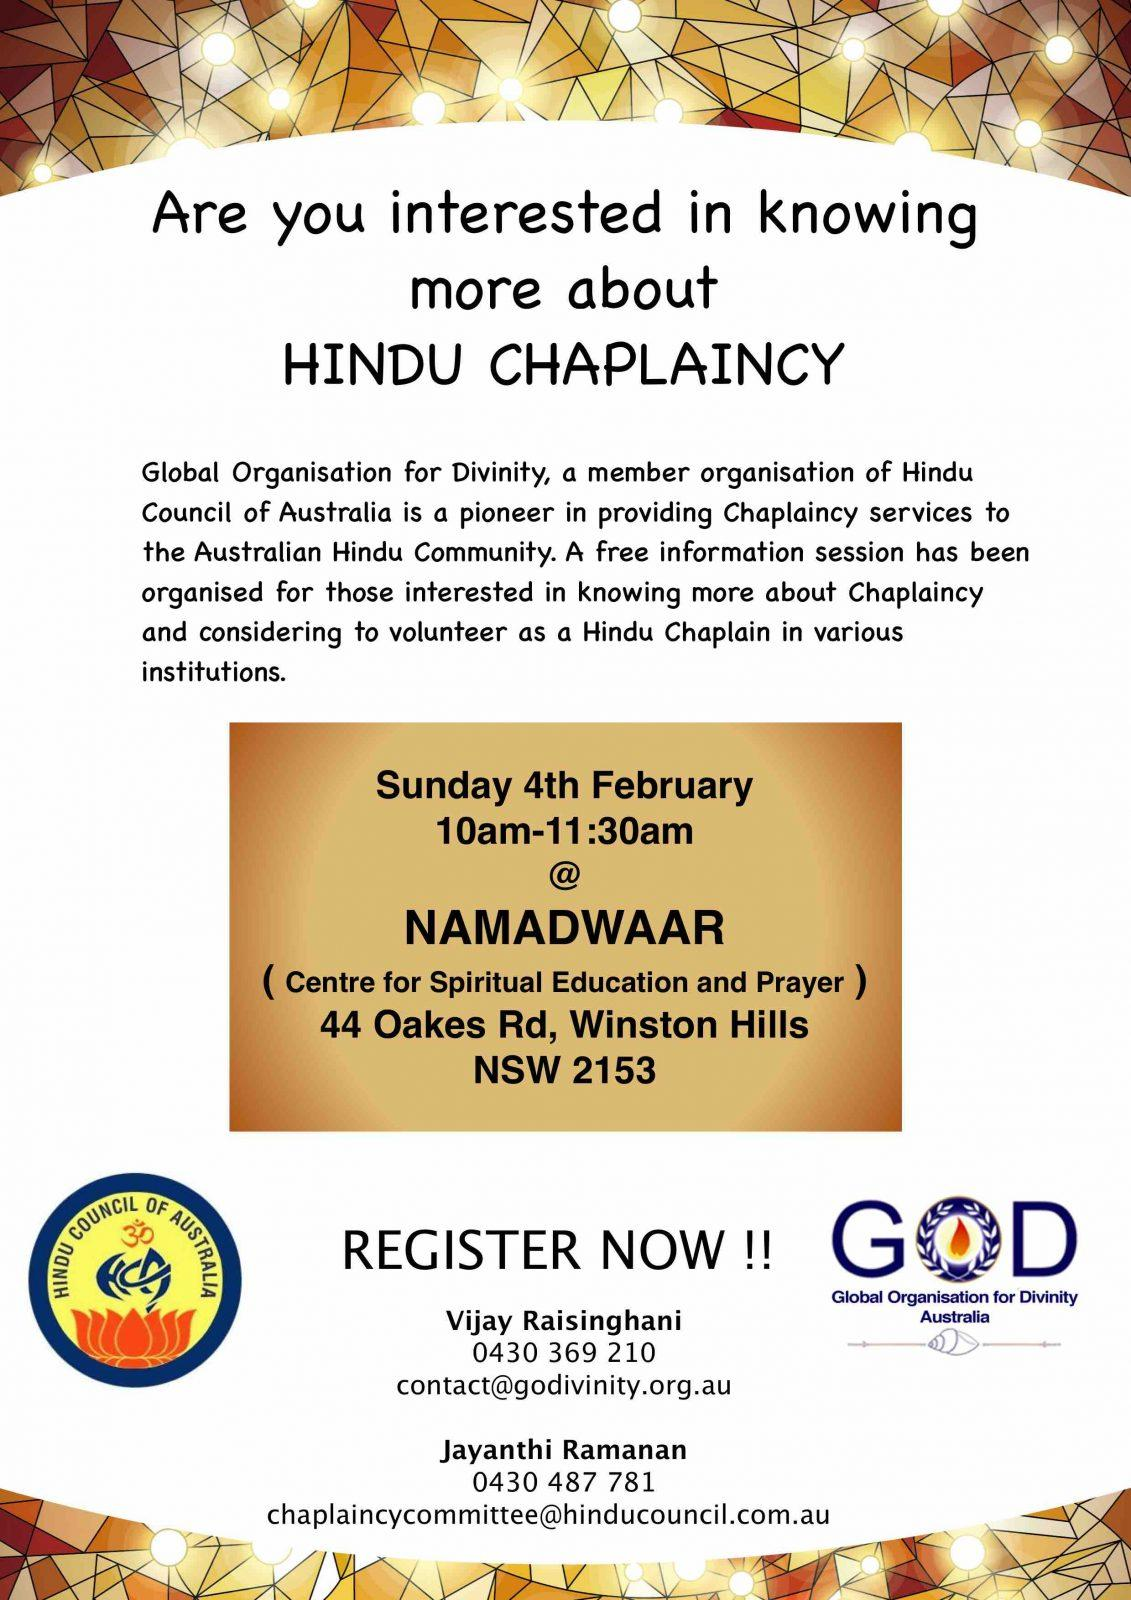 Hindu Chaplaincy Information Session 4th February - Hindu Council of